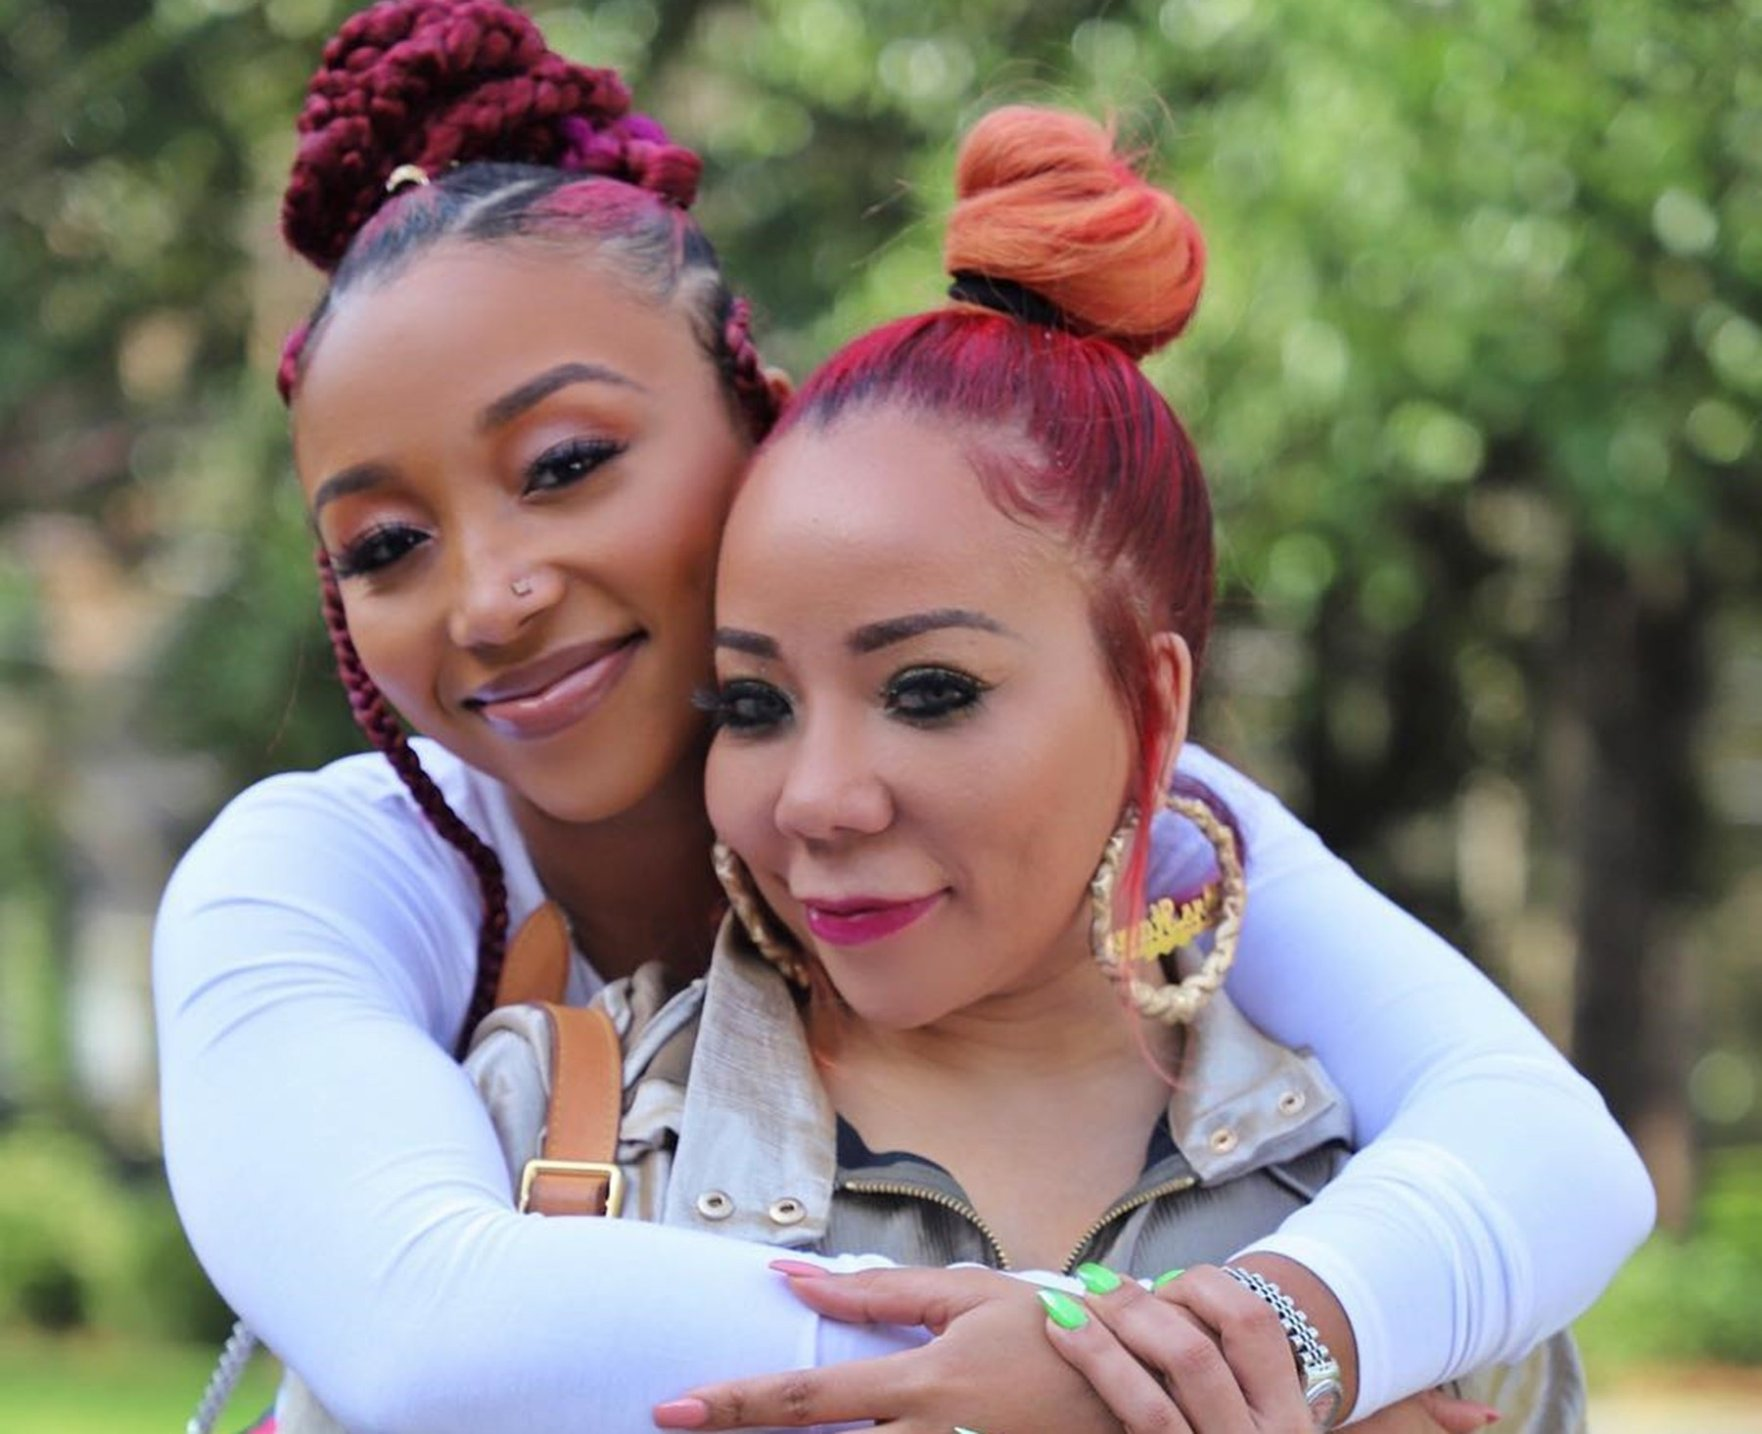 Tiny Harris Gushes Over Her Firstborn, Zonnique Pullins - Fans Are Amazed By Their Resemblance